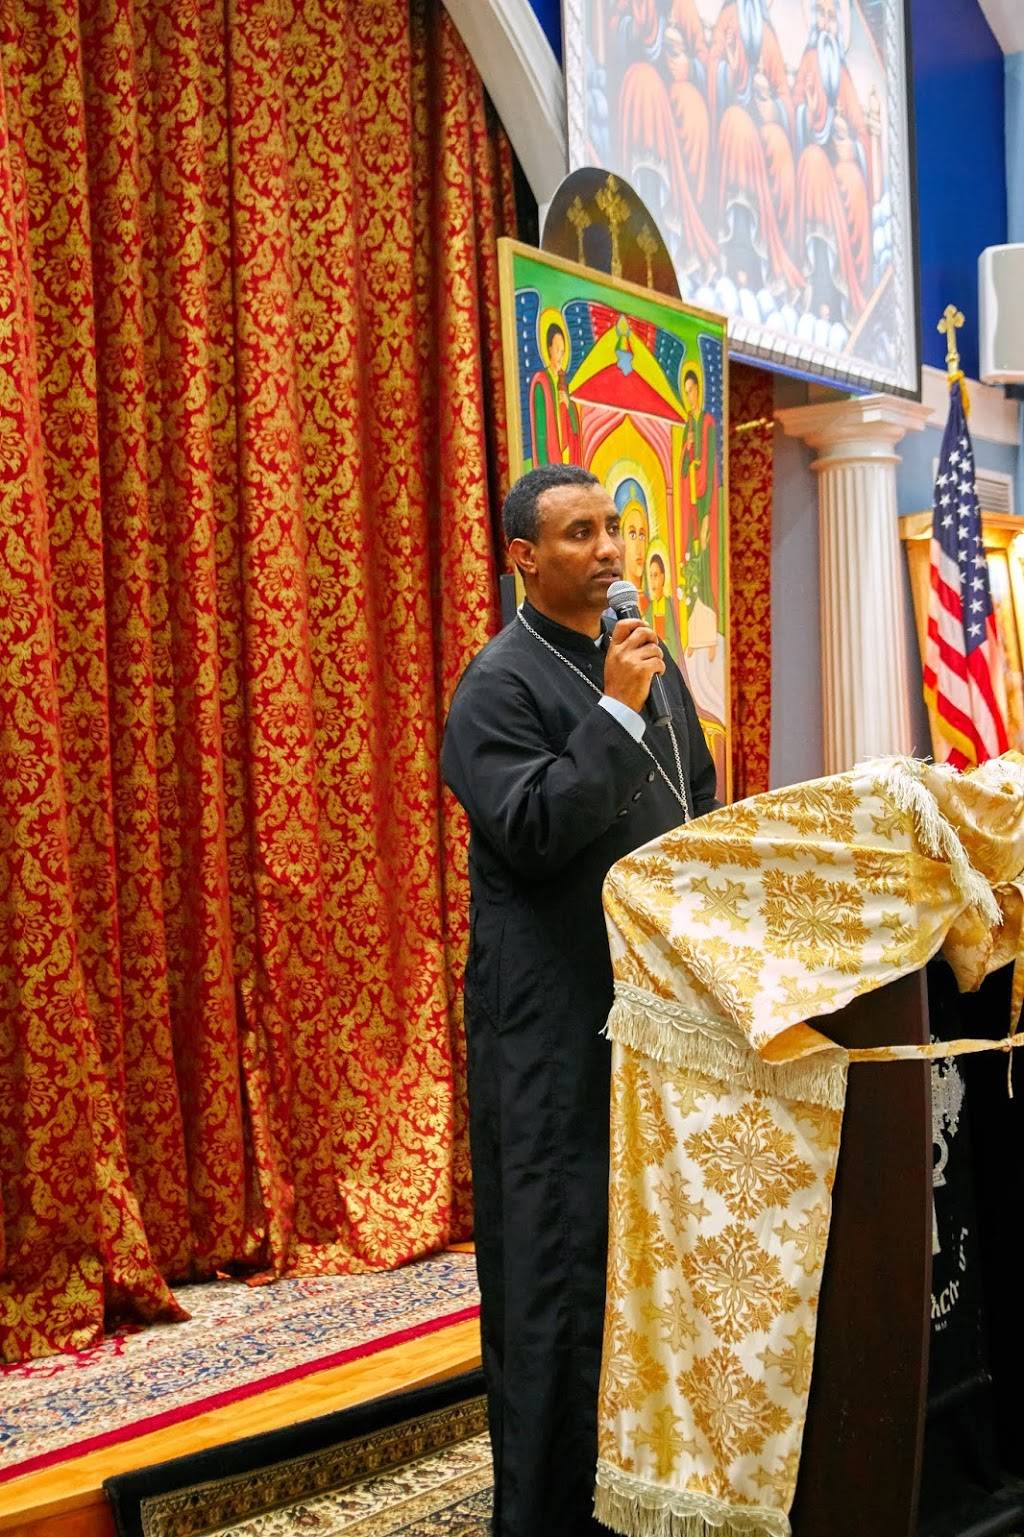 Debre Tabor Egziabher Ab Orthodox Tewahedo Church - church  | Photo 4 of 7 | Address: 231 Taft St, Durham, NC 27703, USA | Phone: (919) 931-3832